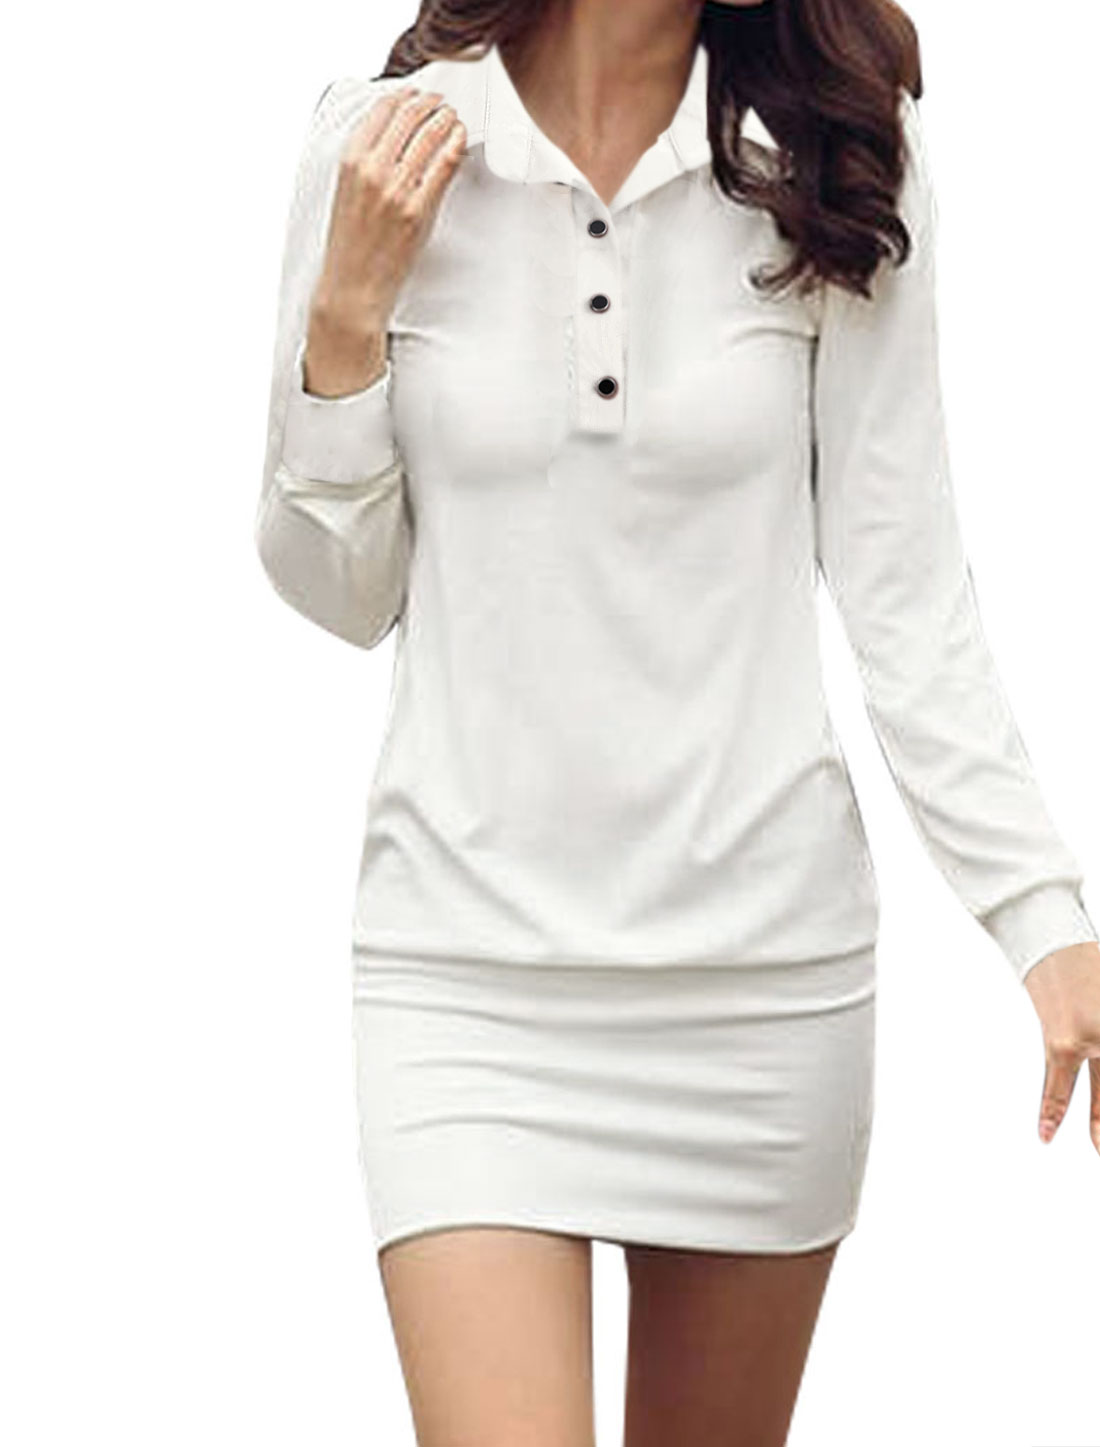 Ladies Chic Point Collar Long Sleeve Buton Front White Mini Dress XL